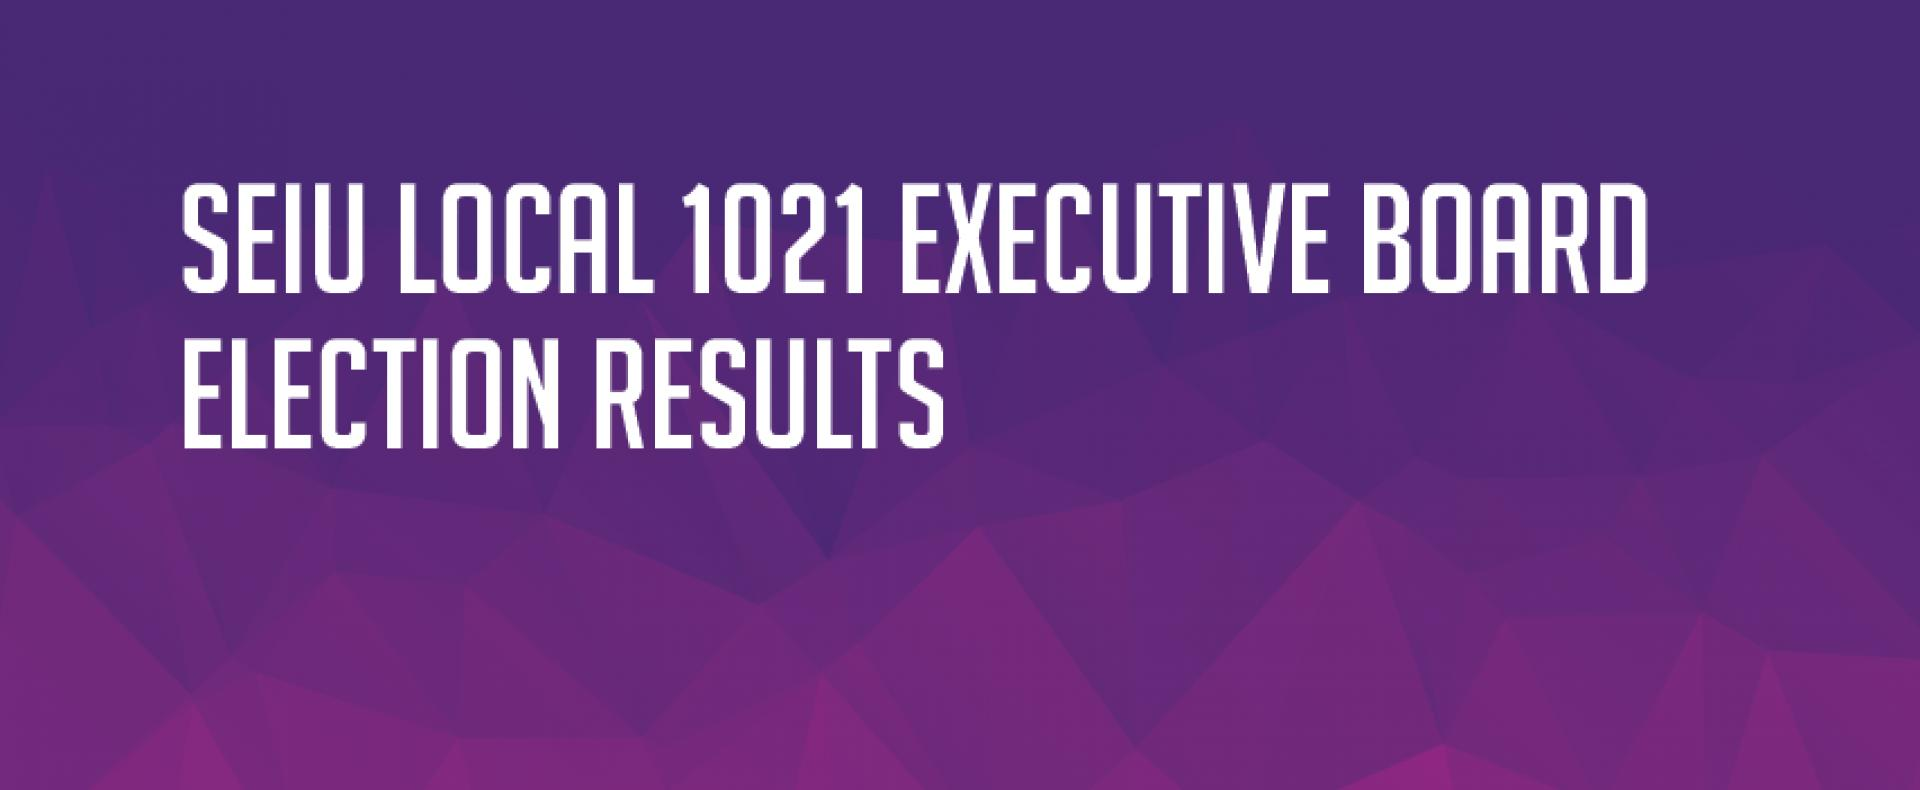 2019 SEIU 1021 Executive Board Election Results